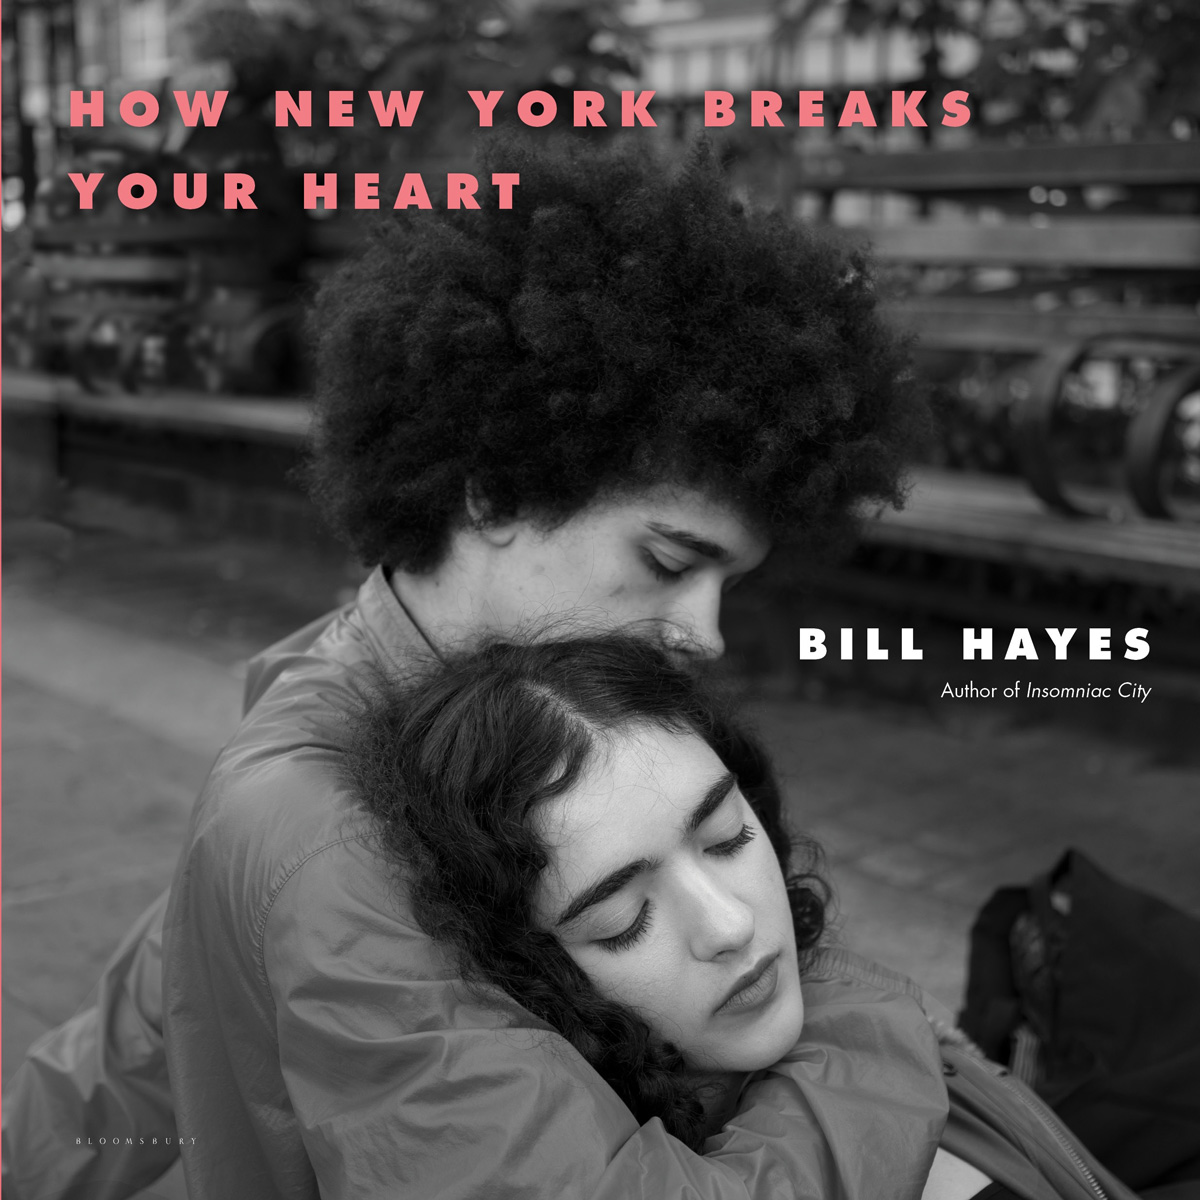 How New York Breaks Your Heart: A Photographic Elegy for the City of Electric Beauty with an Edge of Sorrow